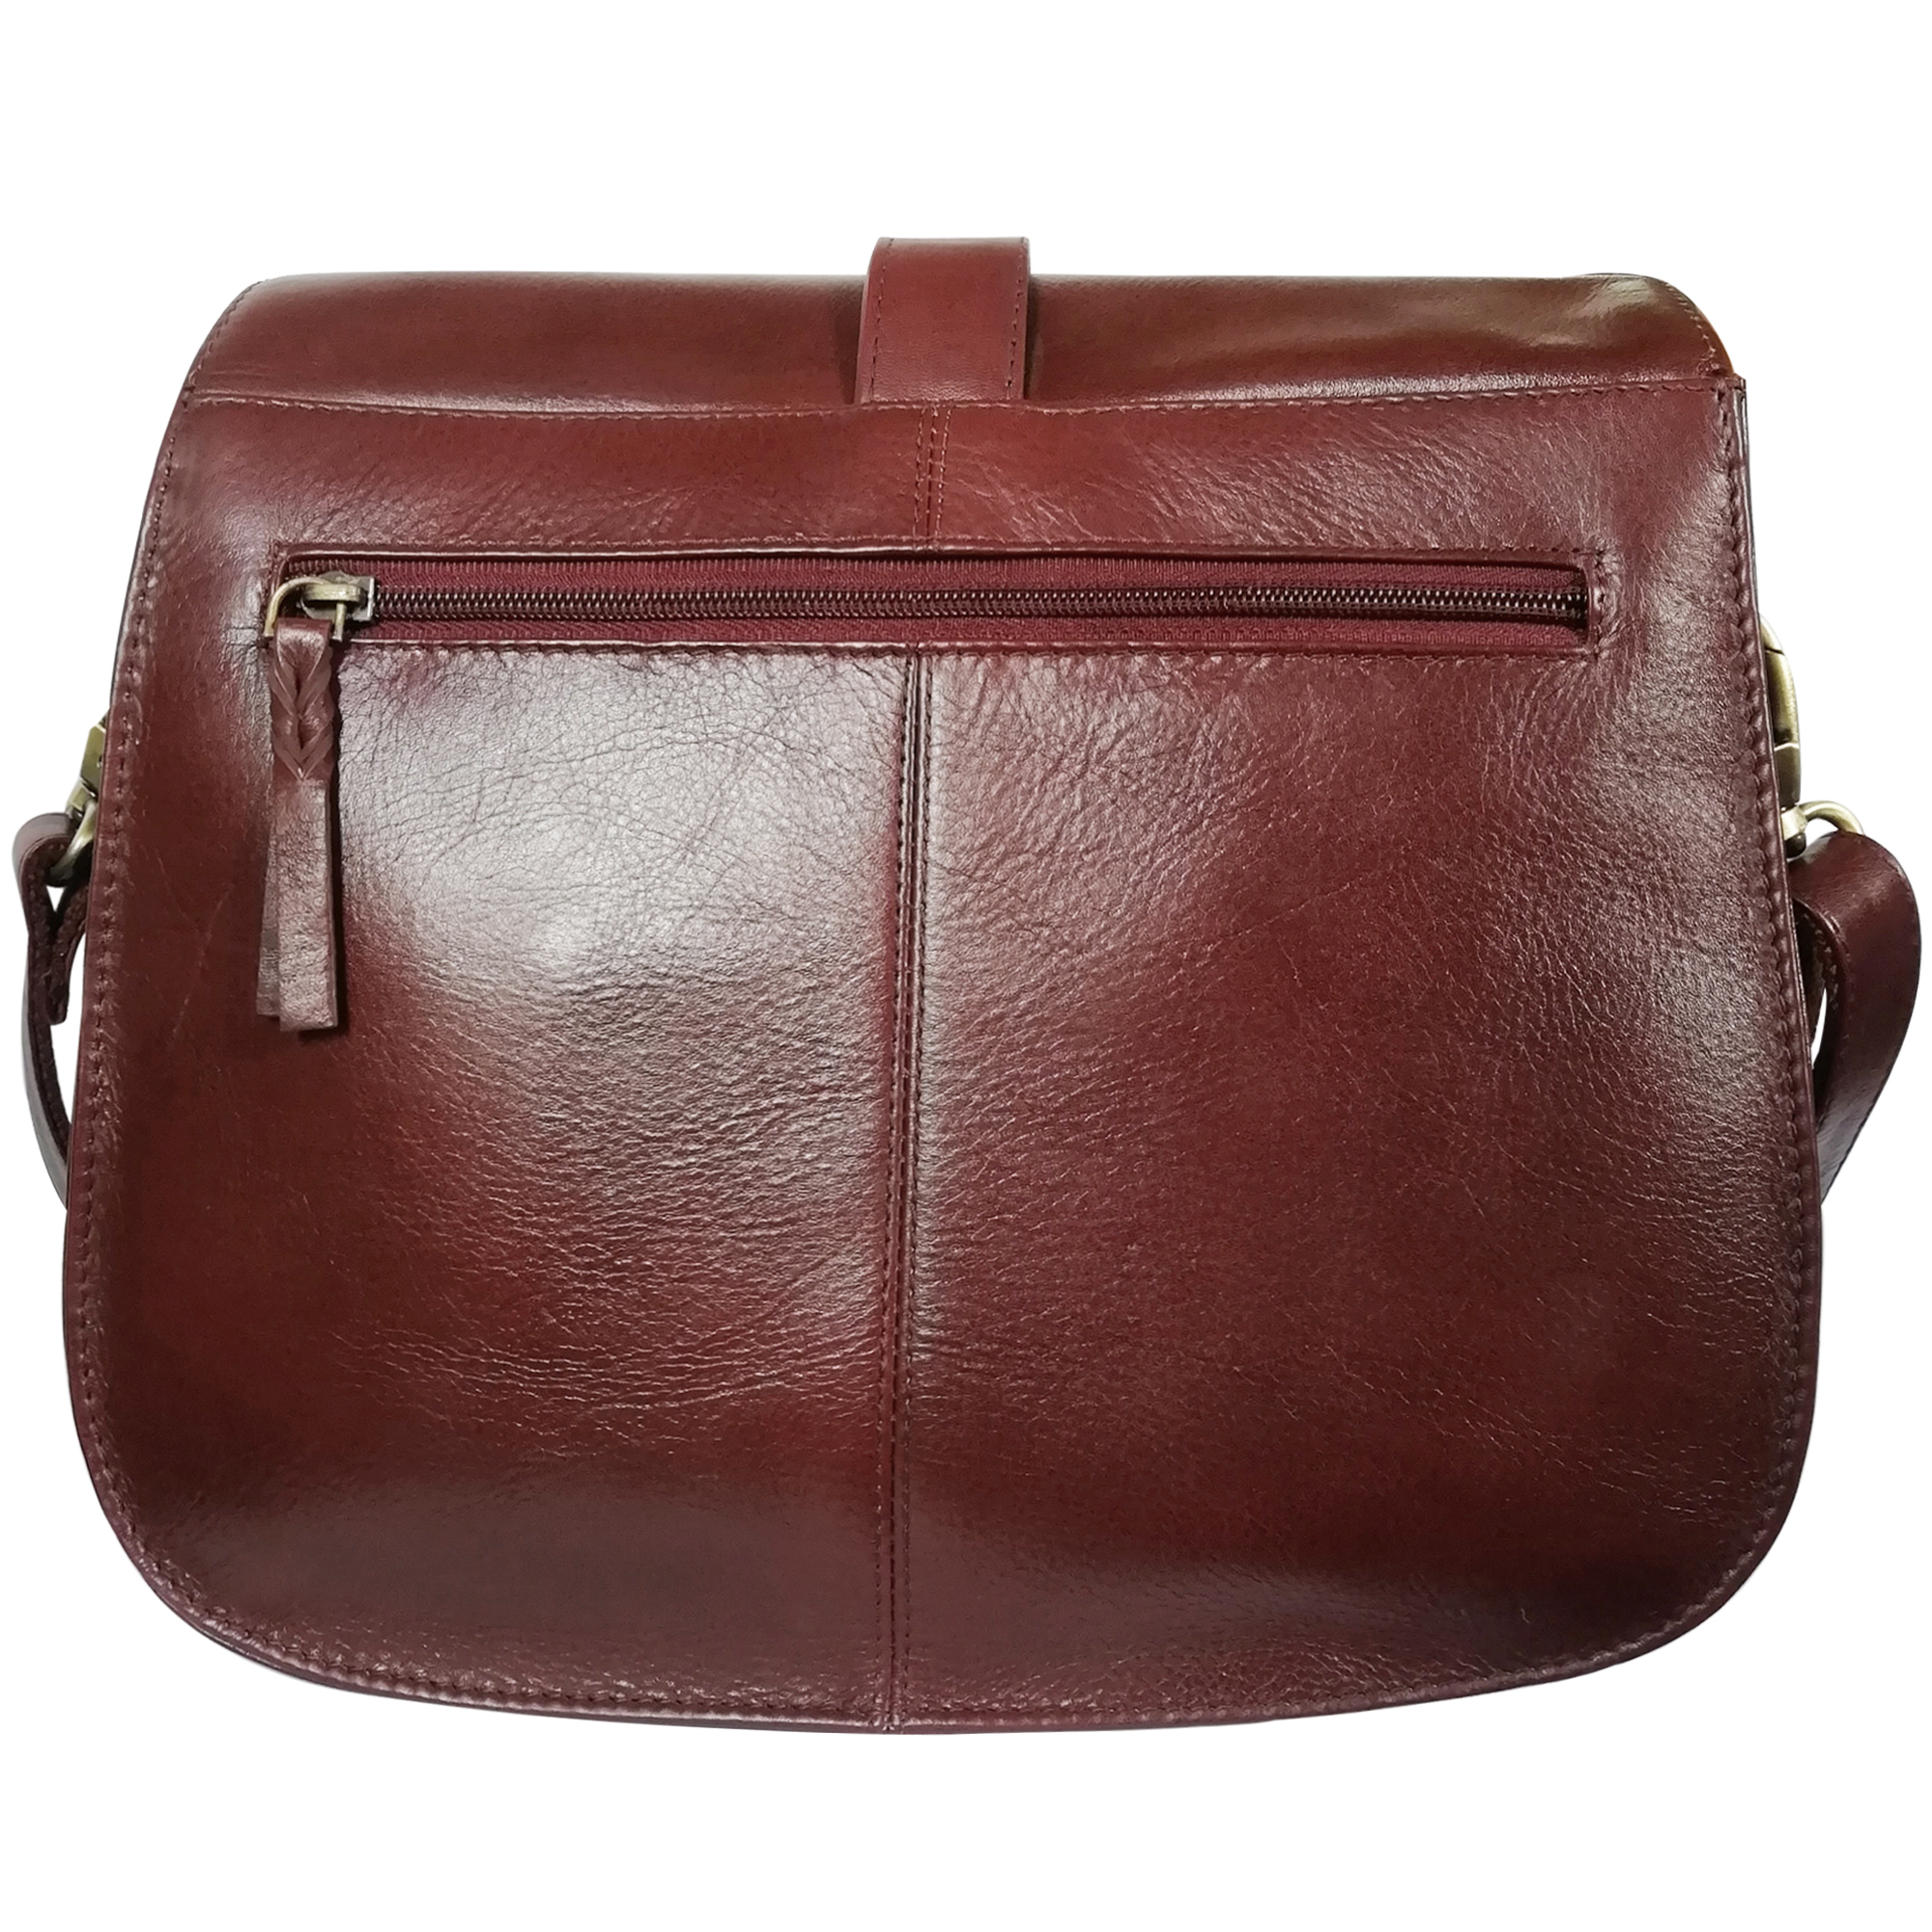 New Women's Leather Shoulder Bag For Office